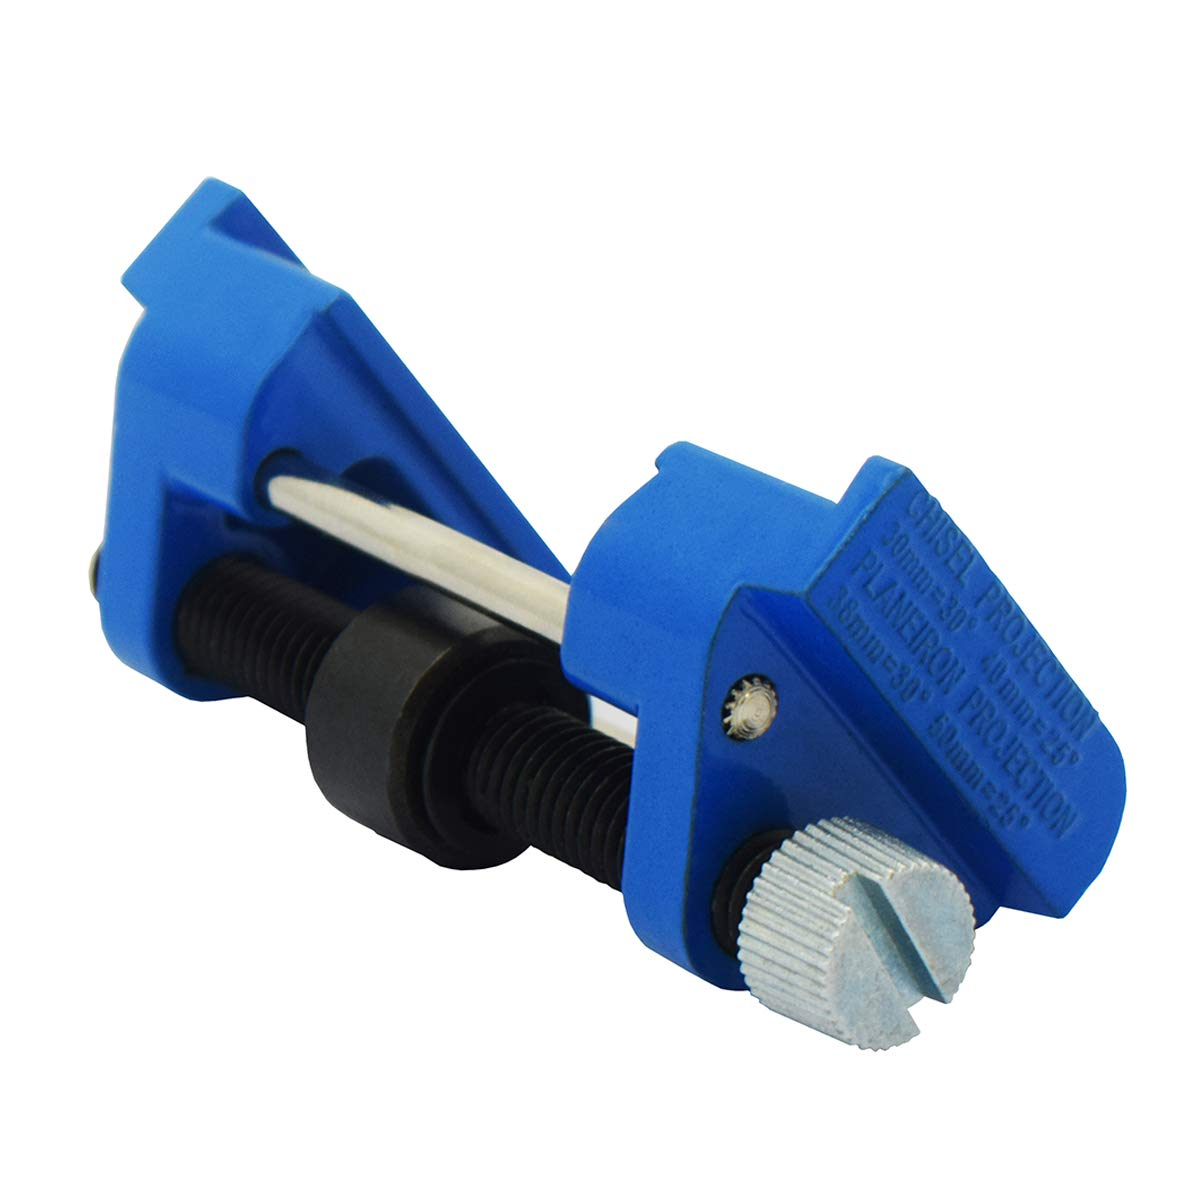 """CartLife Honing Guide Jig for Wood Chisel Edge Sharpening Holder,Fixed Angle Knife Sharpener,Clamping Planer Blade,Graver,Flat Chisel Hand Tool (Chisels 1/8"""" to 1-7/8"""",Planer Blades 1-3/8"""")"""